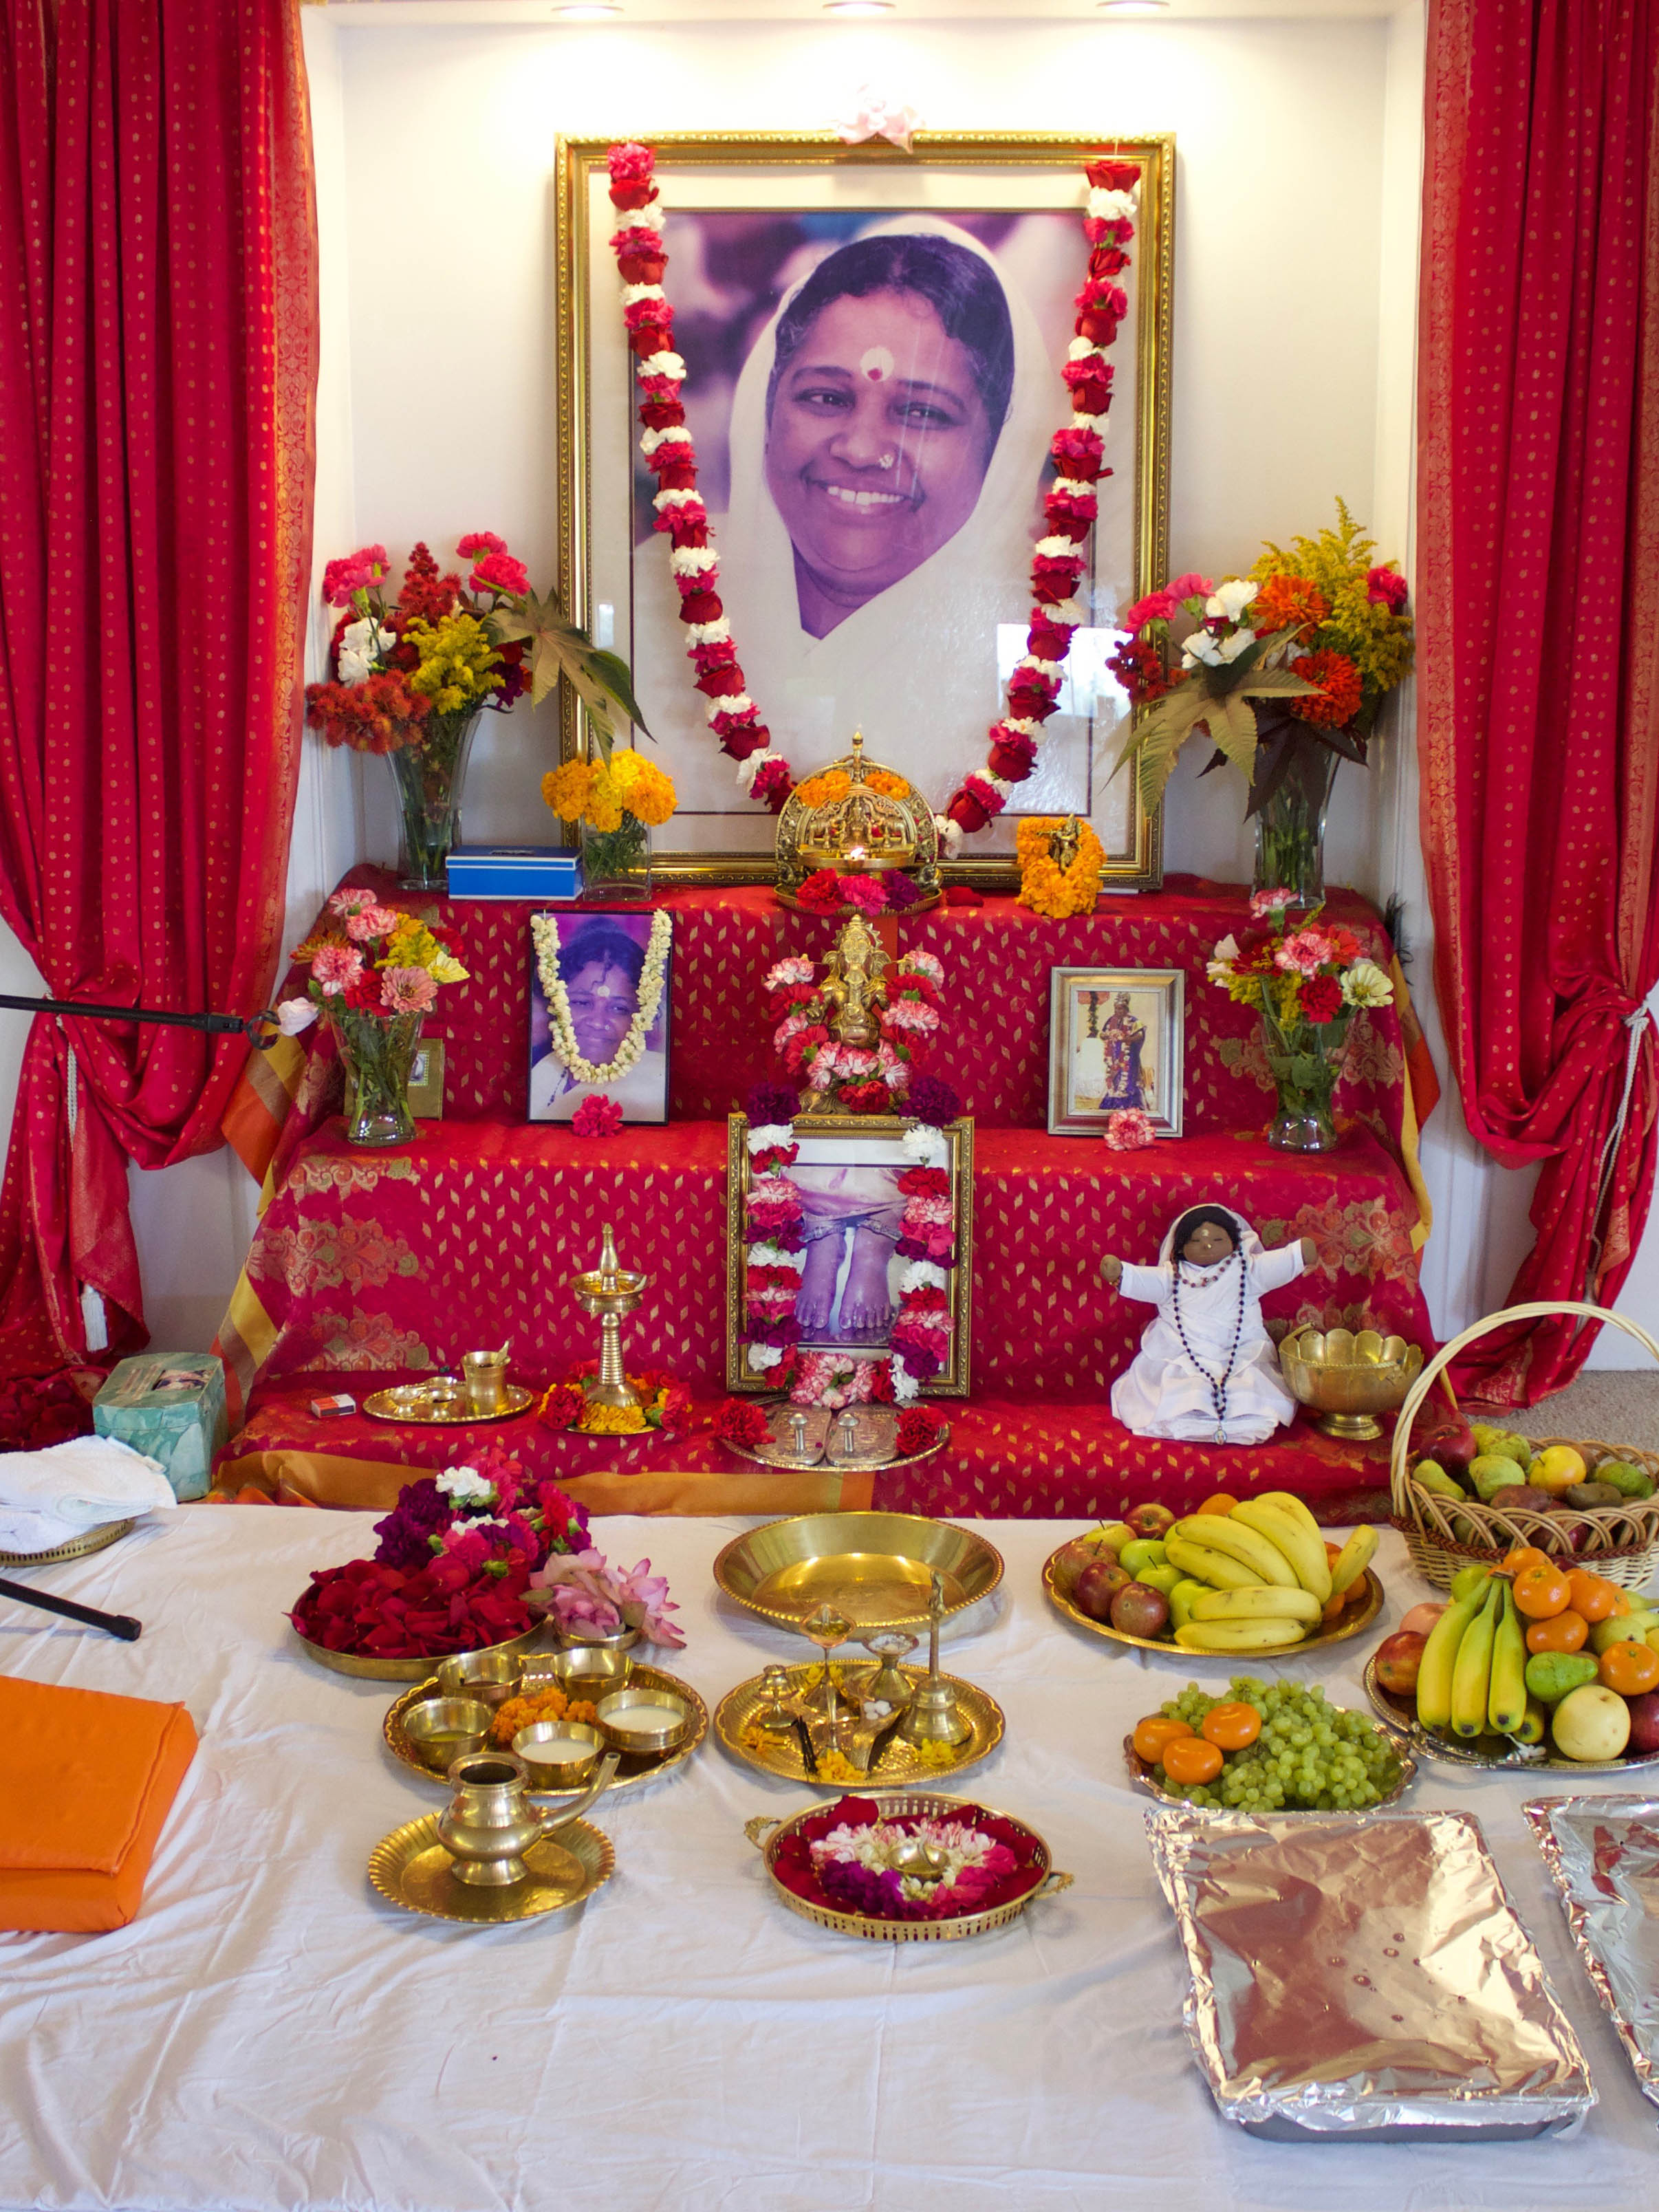 Altar with Amma's picture and garlands of fresh flowers